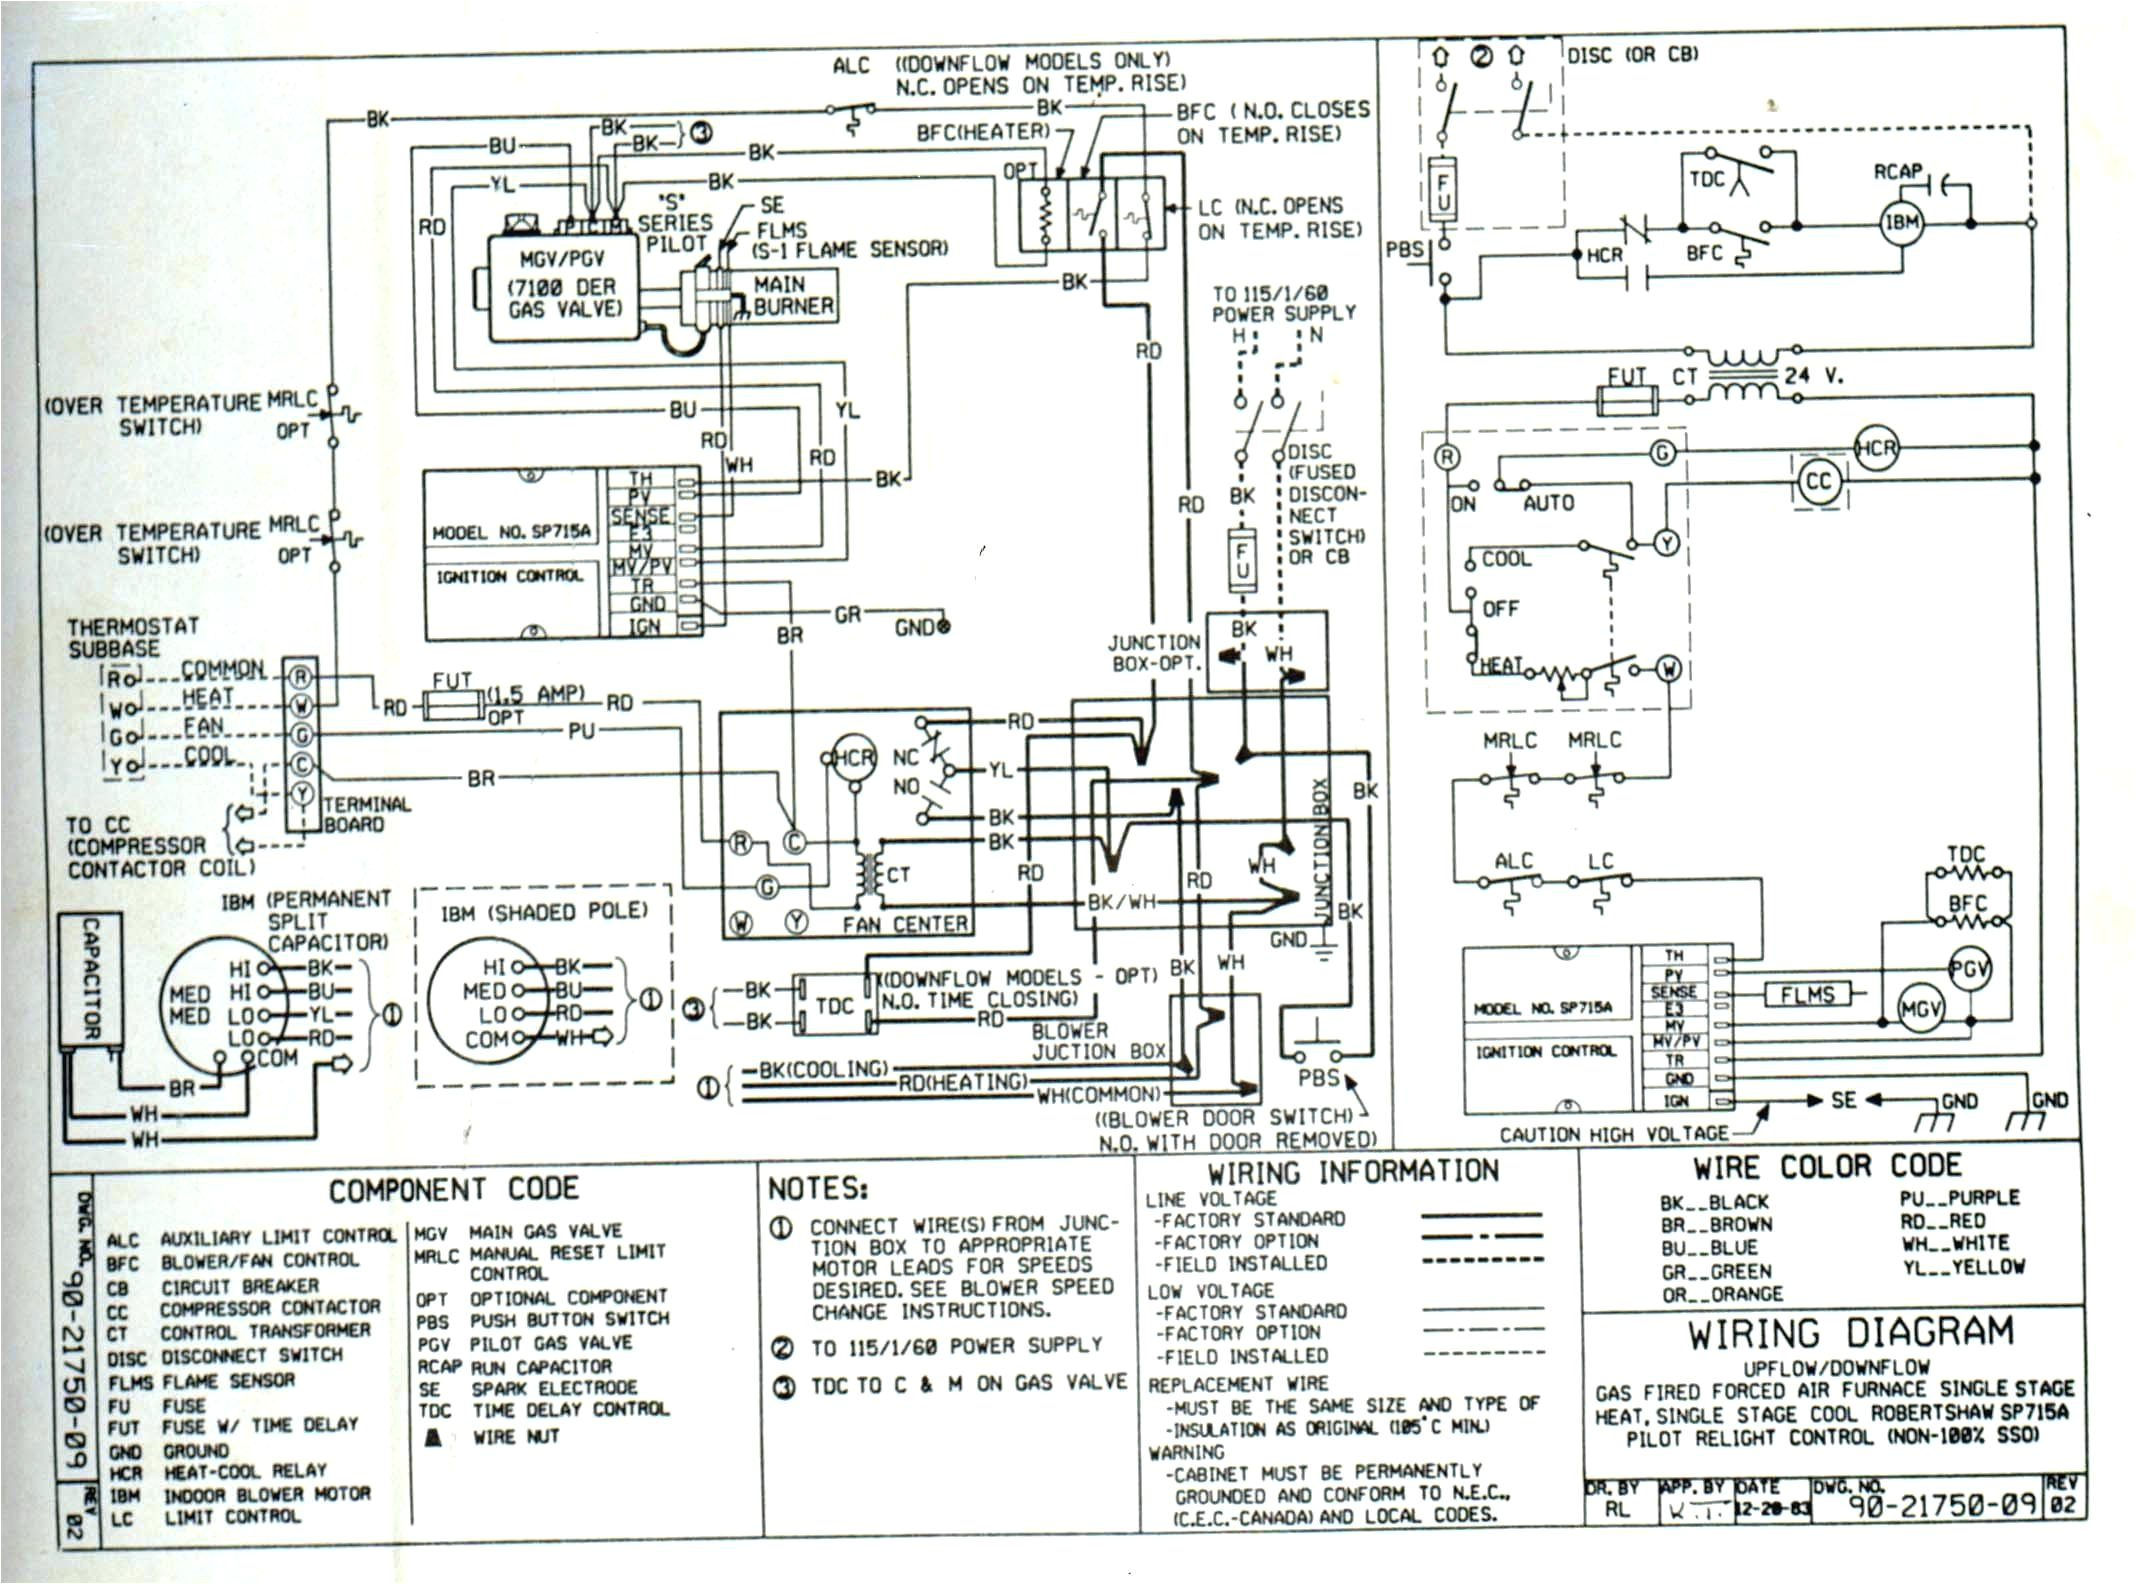 w124 wiring diagram new trane xl80 circuit diagram trusted schematic diagrams